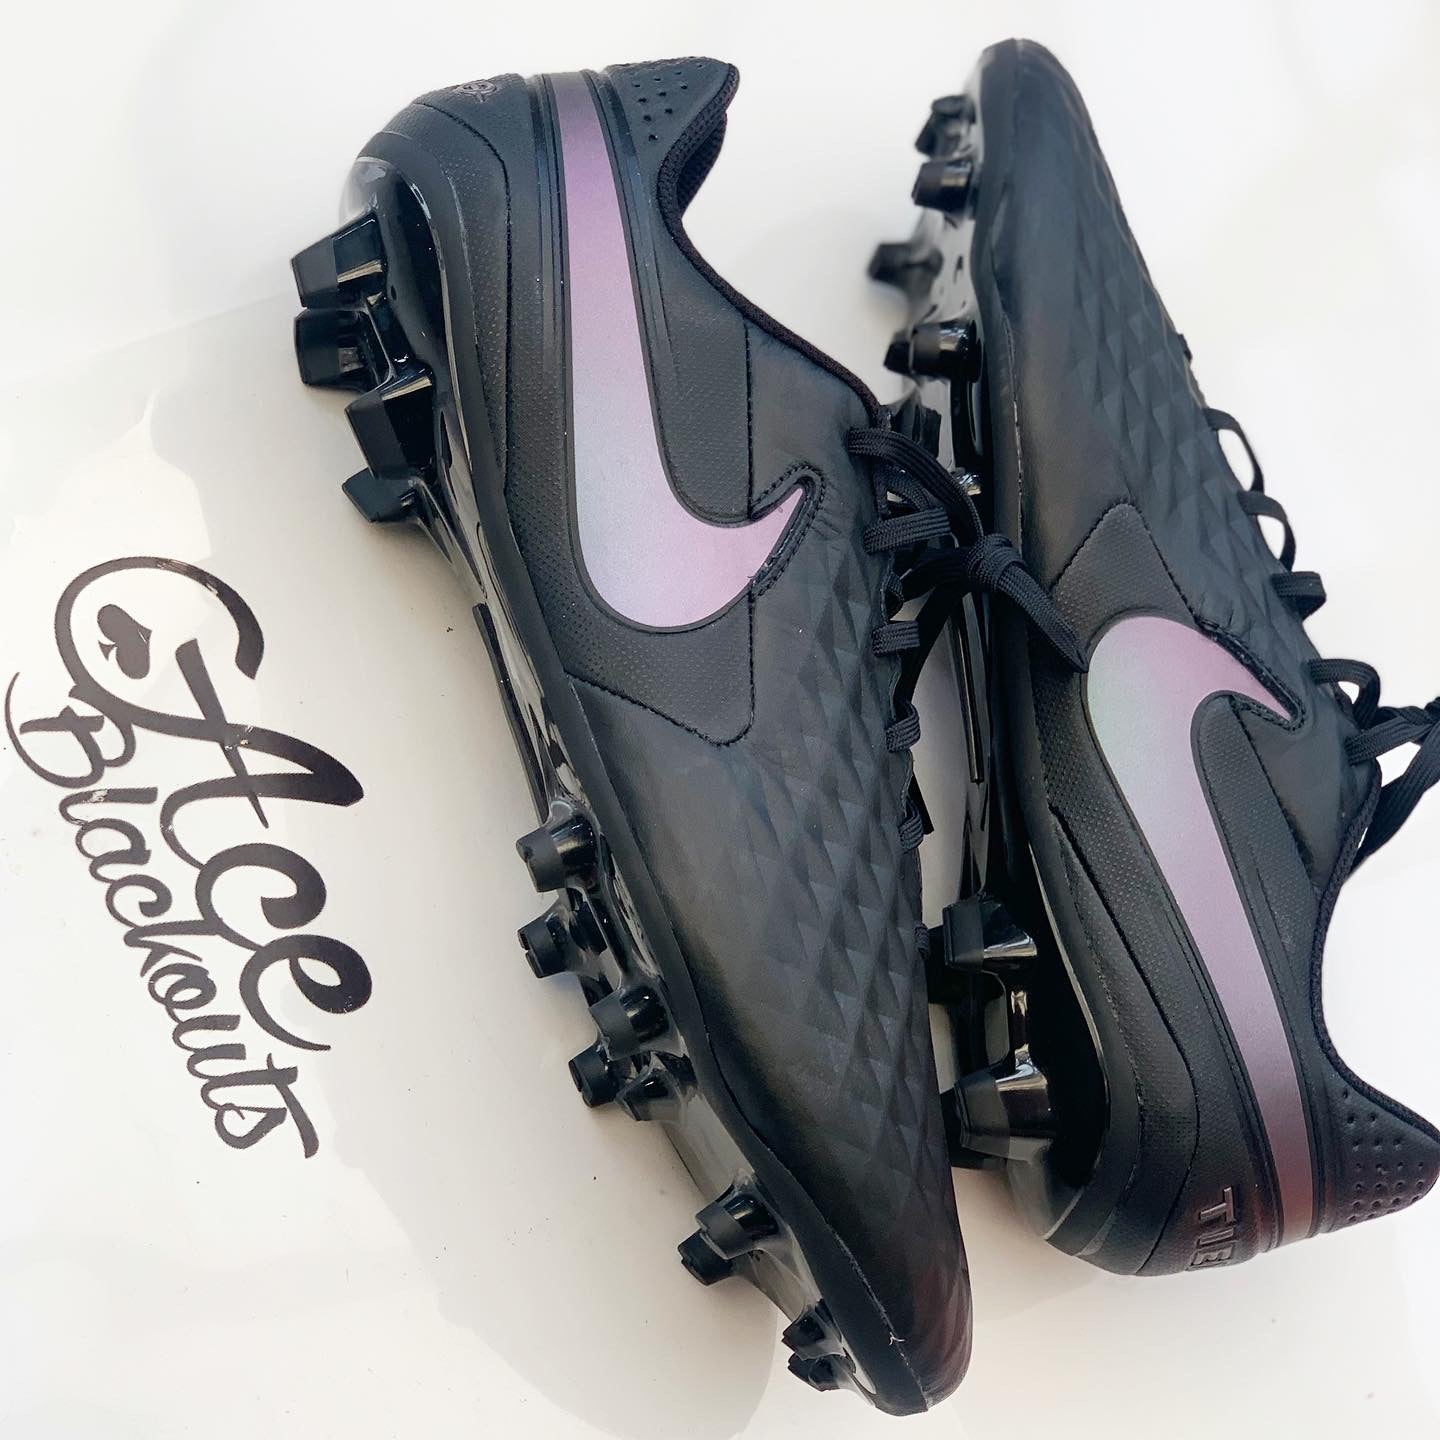 Image of Nike Tiempo Academy FG/MG Football Boots (Academy Acceptable)